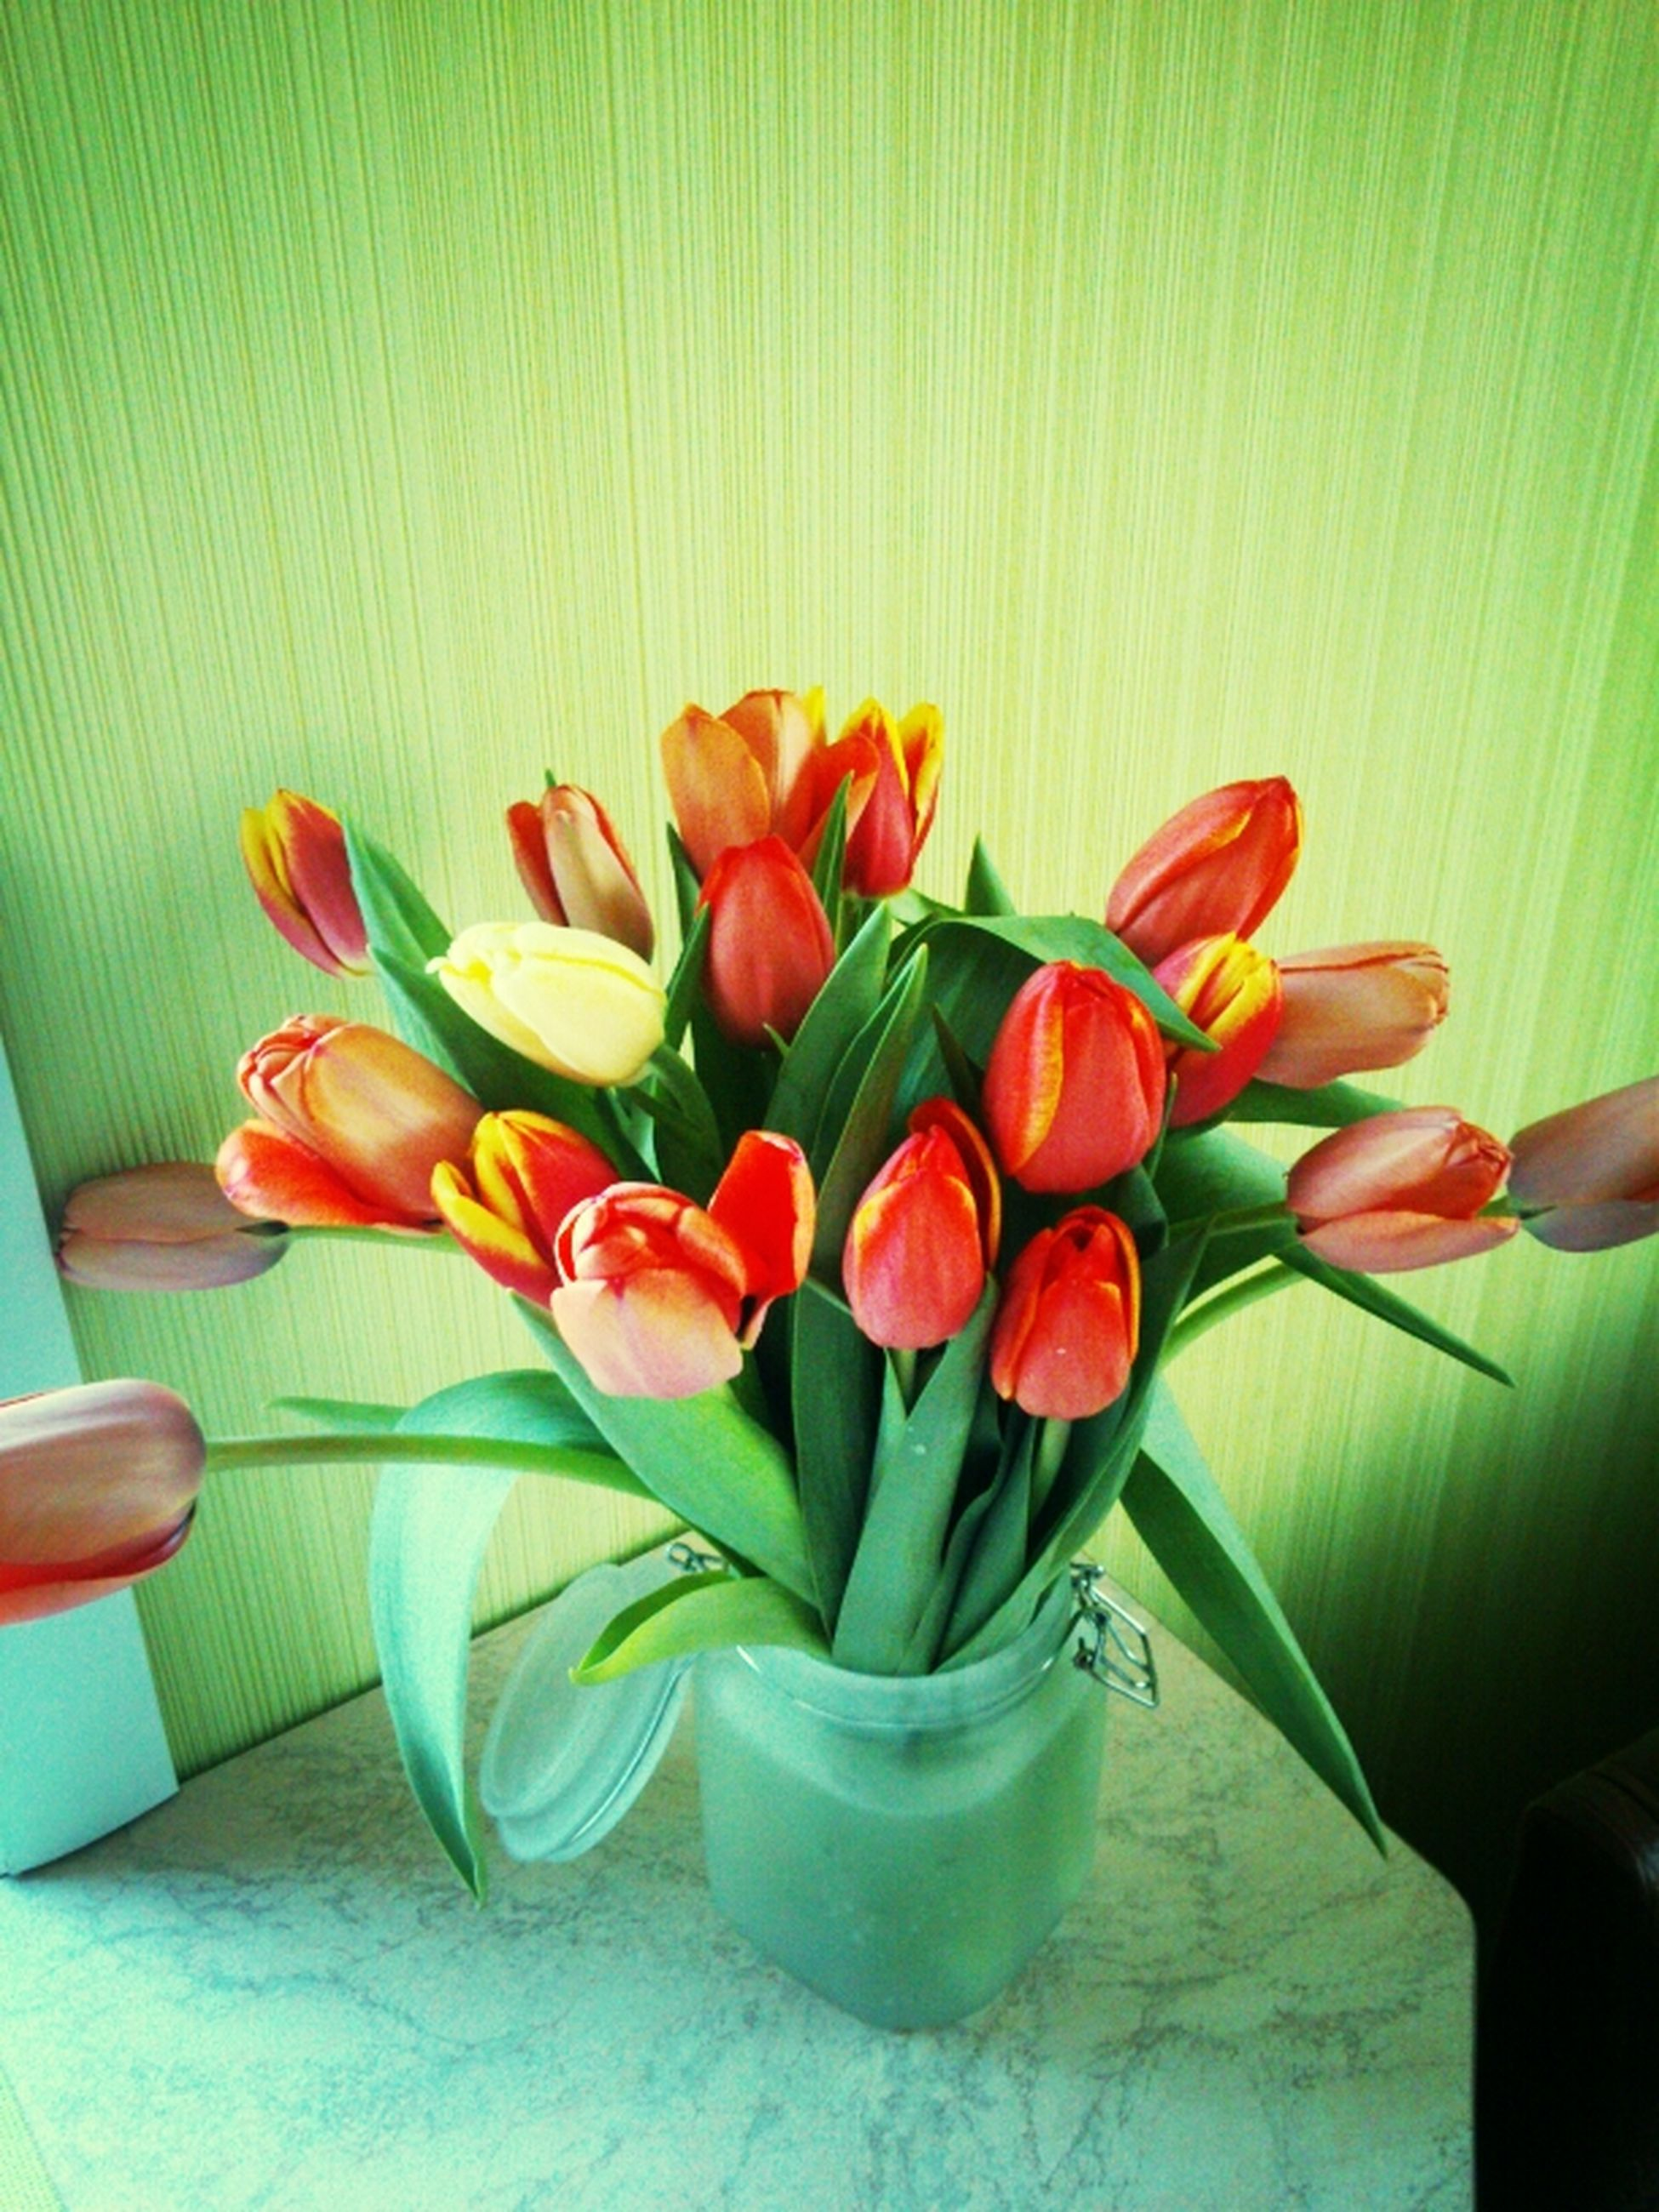 flower, indoors, freshness, petal, fragility, red, vase, flower head, table, plant, tulip, potted plant, growth, beauty in nature, close-up, home interior, nature, multi colored, bouquet, leaf